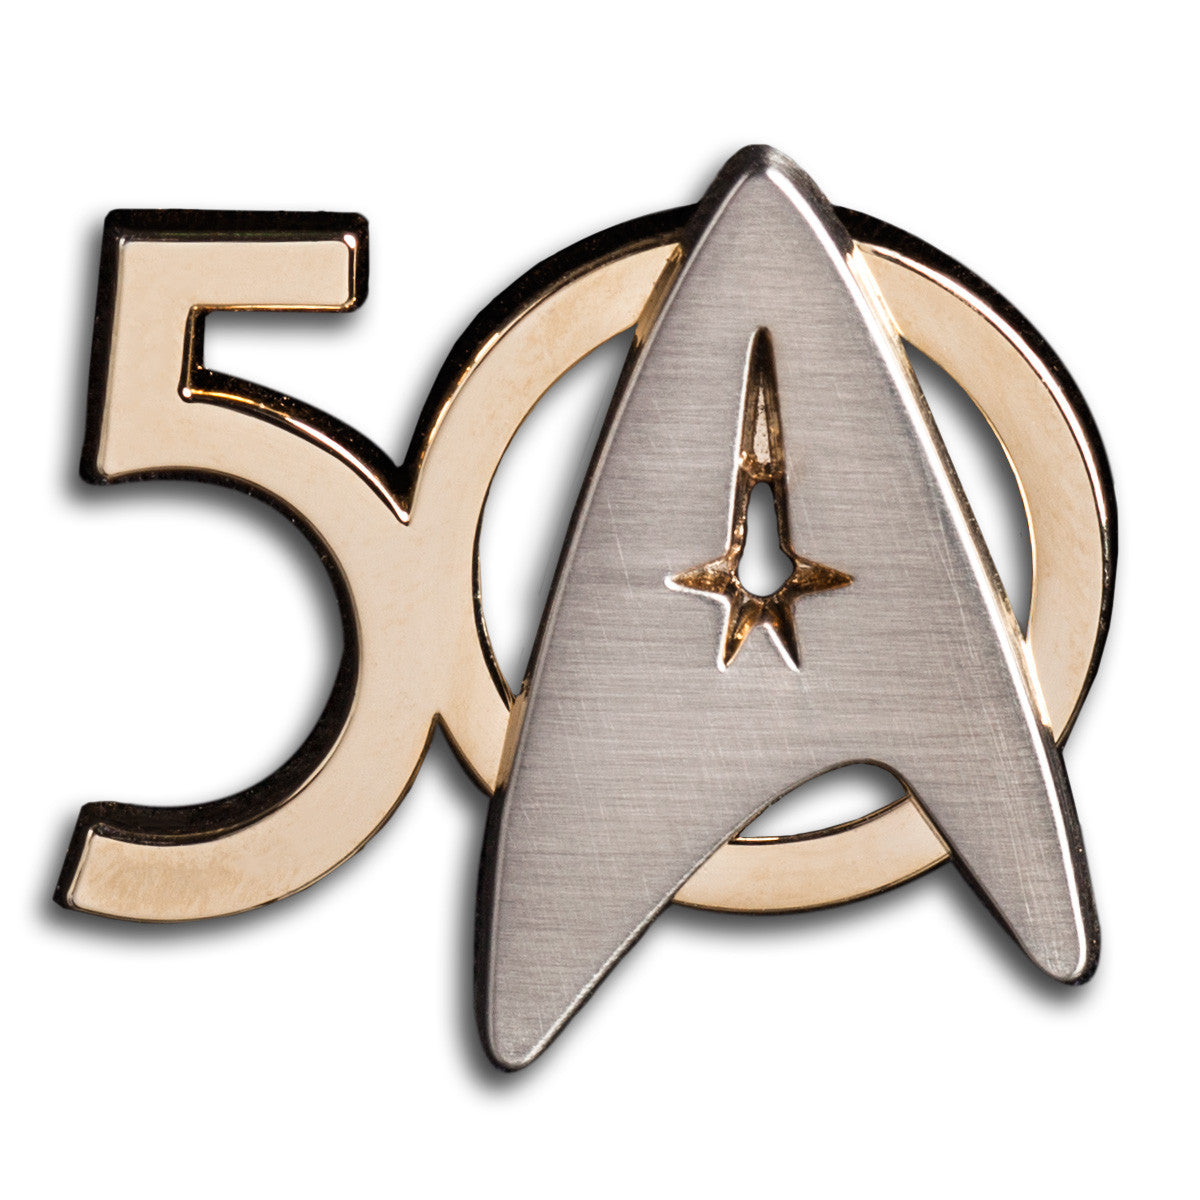 Star Trek 50th Anniversary Lapel Pin